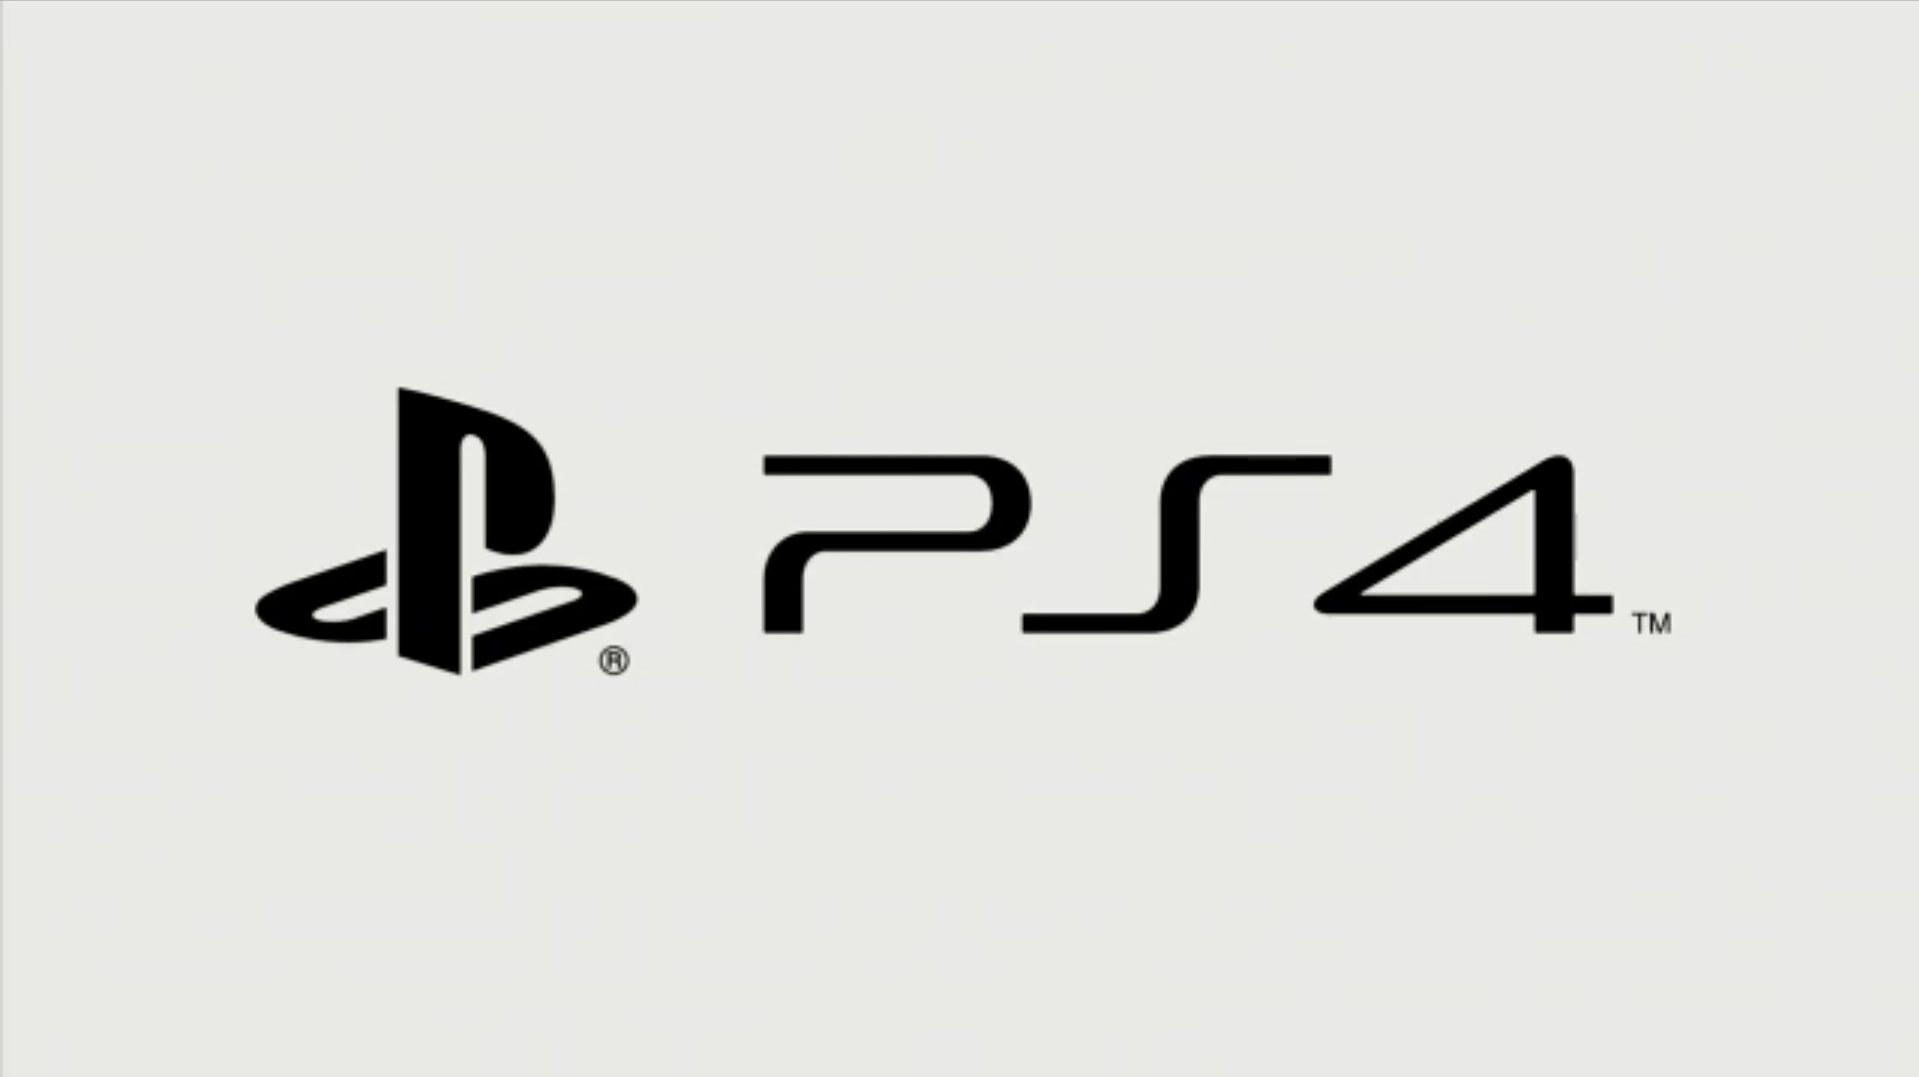 April Npd Sales Result Shows Another Ps4 Victory In